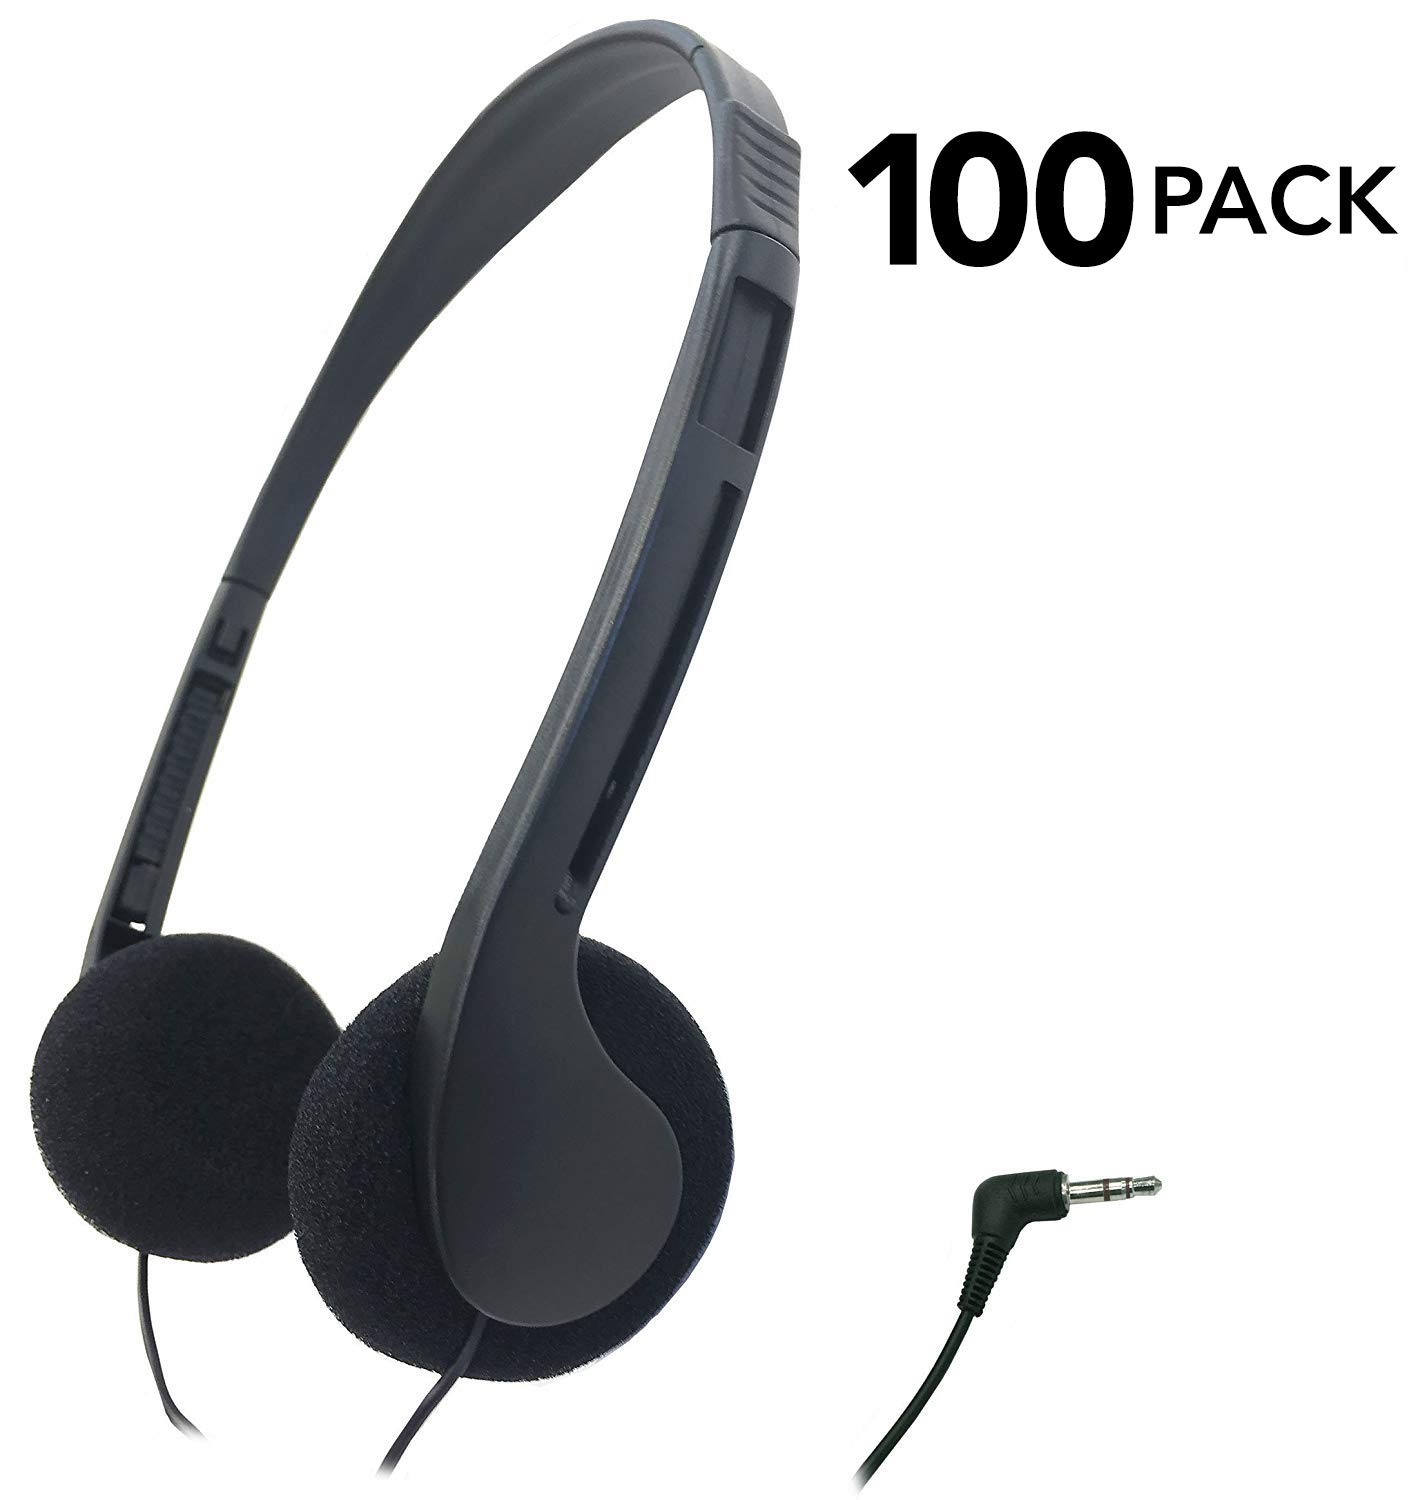 SmithOutlet 100 Pack Low Cost Classroom/Library Headphones by SmithOutlet (Image #1)